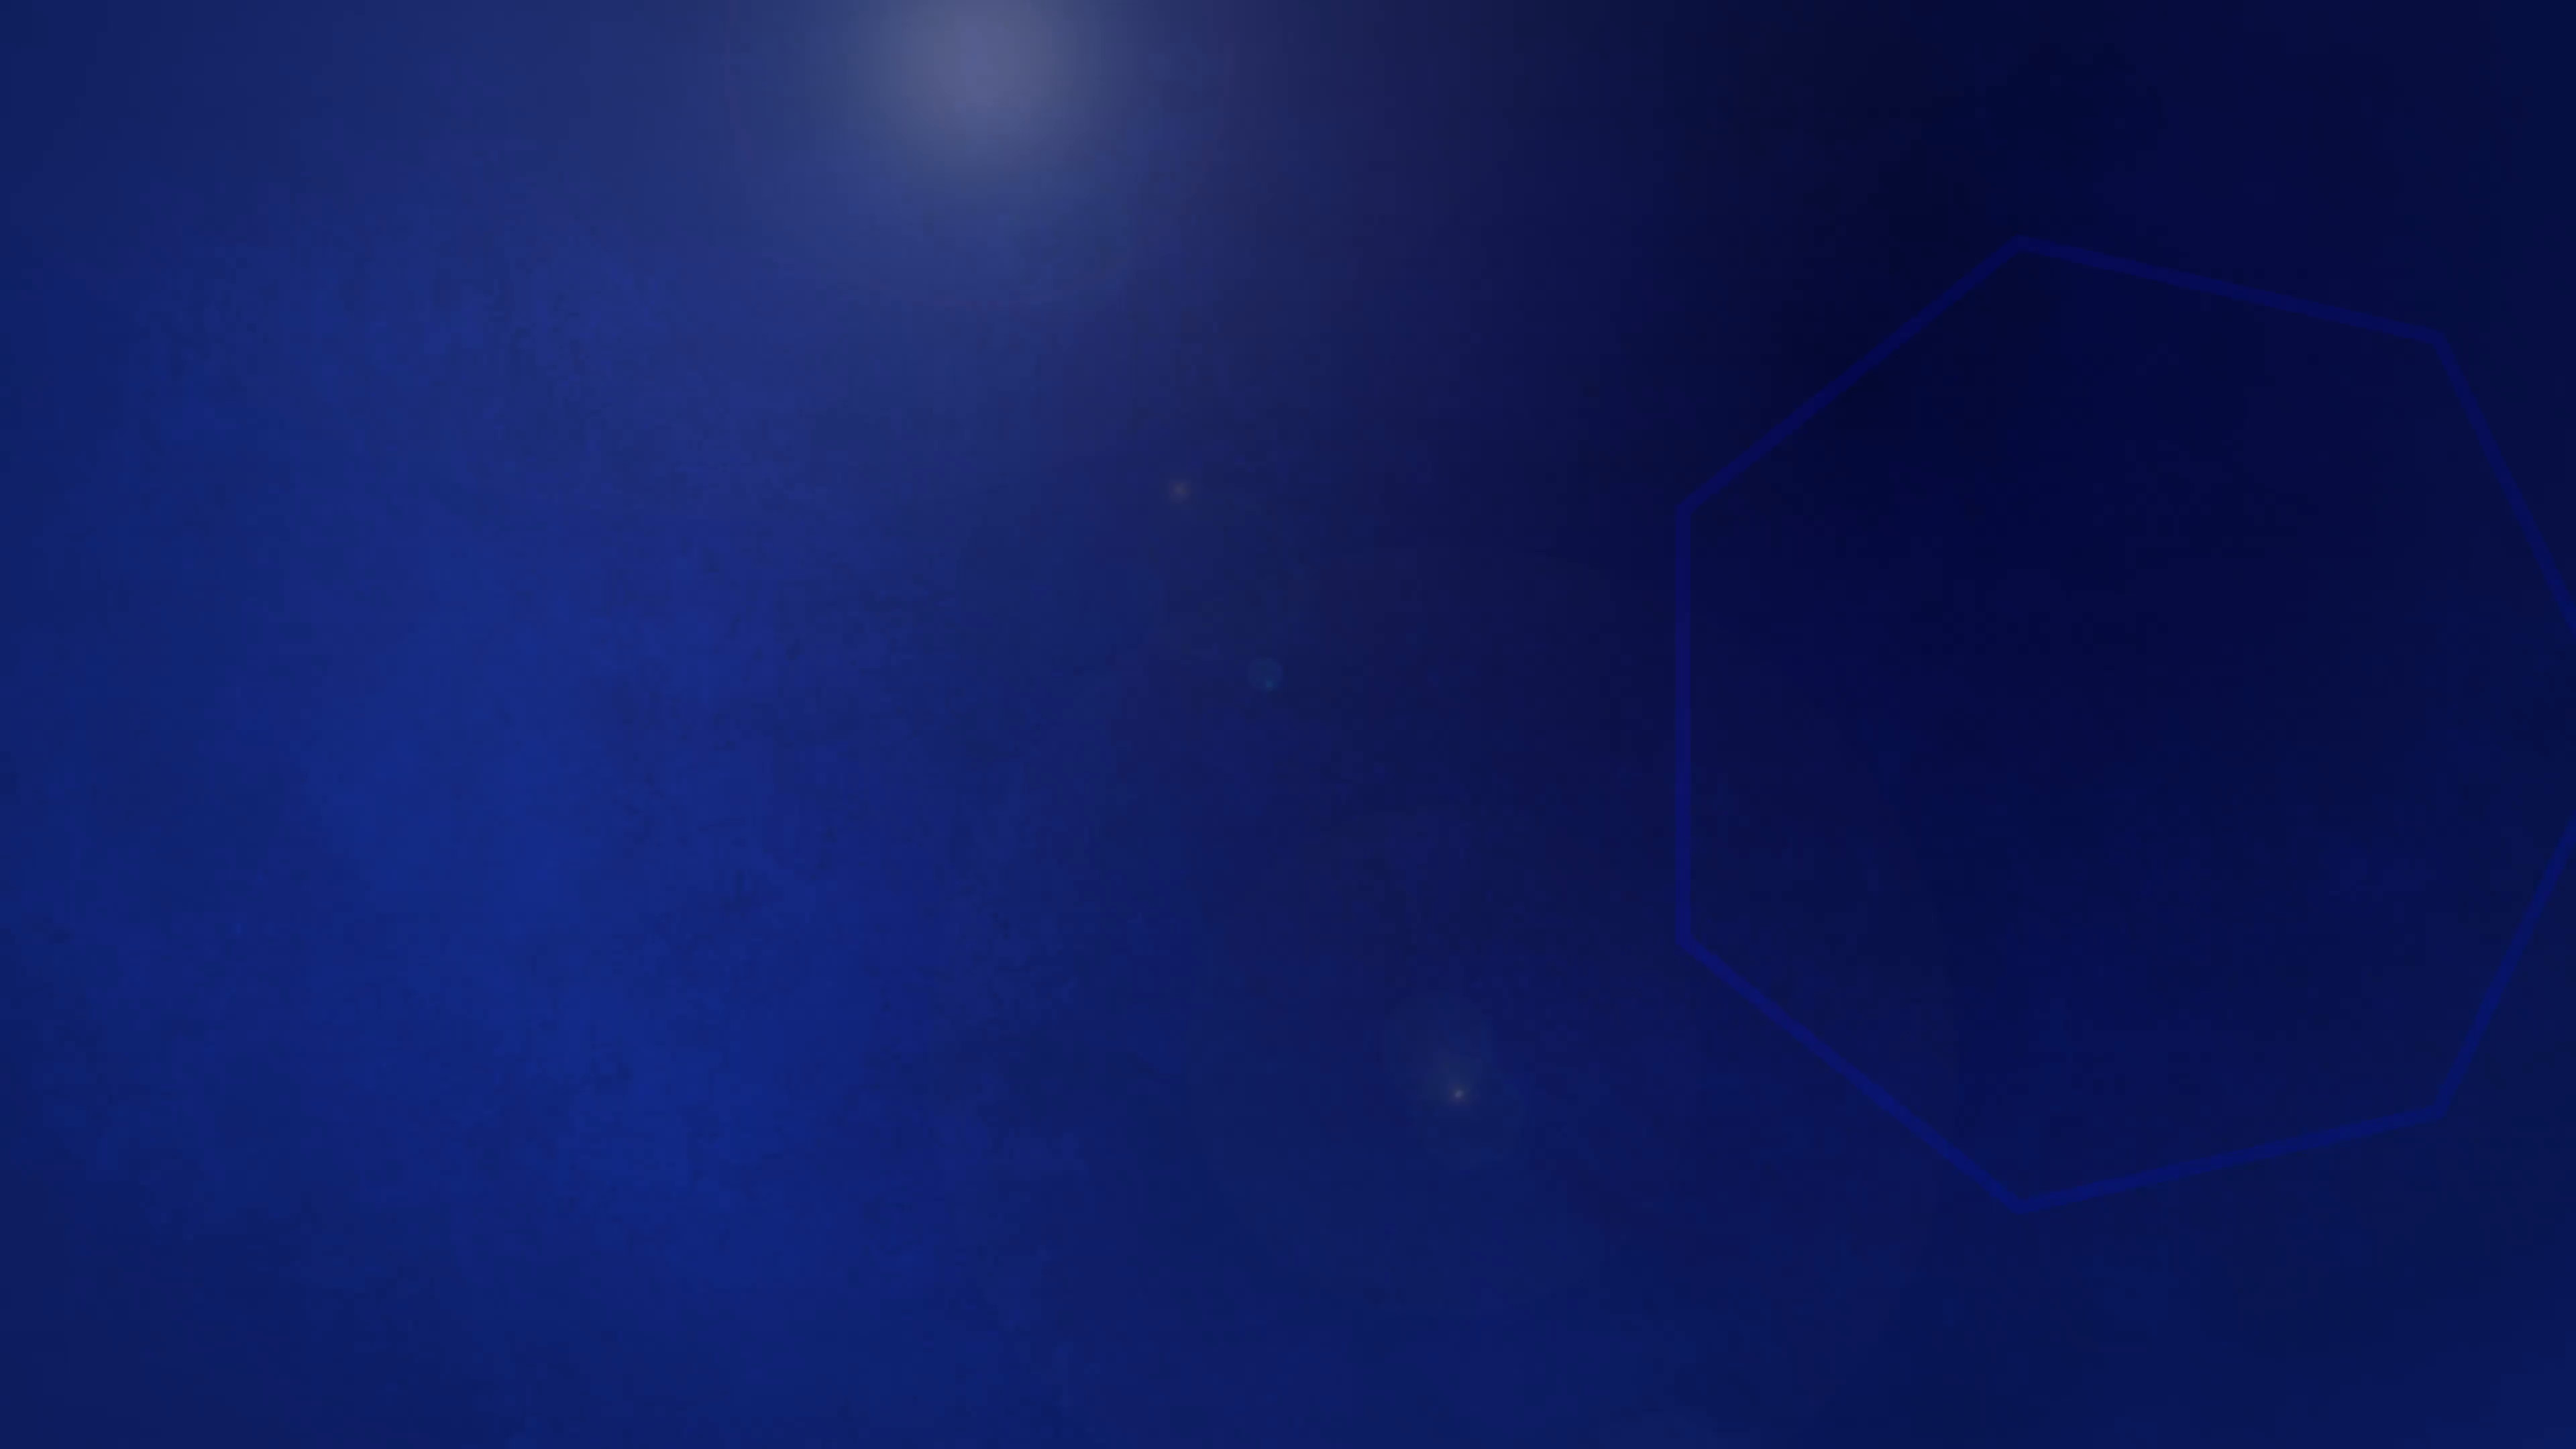 blue and gold backgrounds 183��